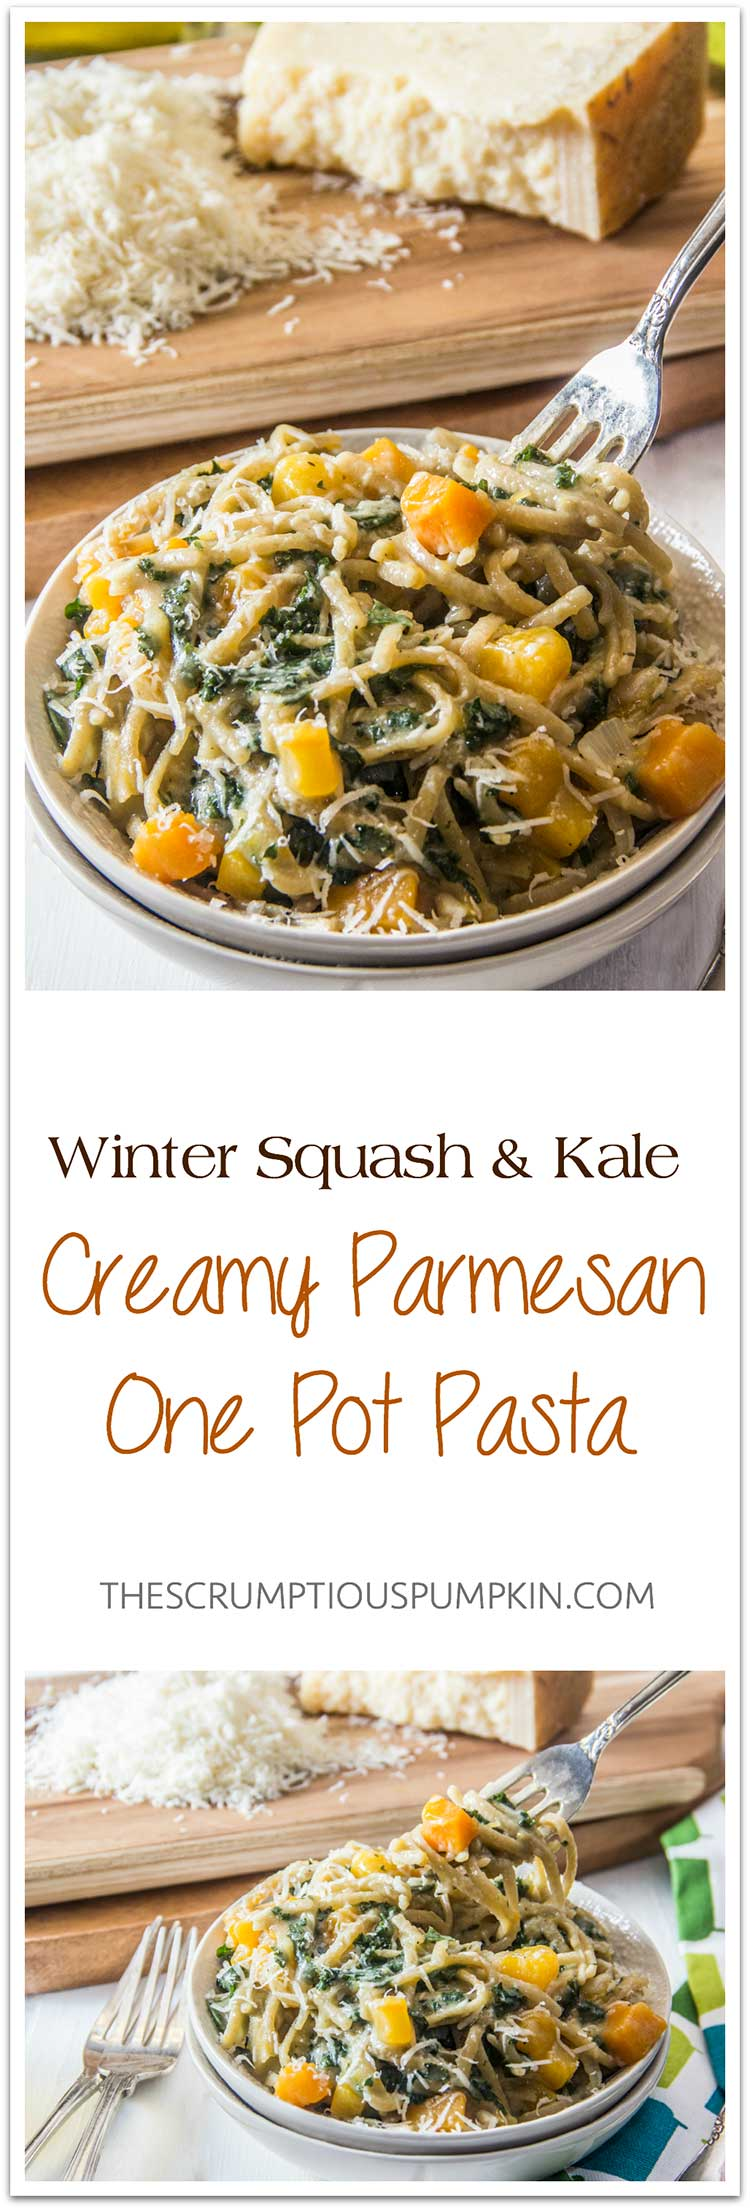 Winter-Squash-and-Kale-Creamy-Parmesan-One-Pot-Pasta